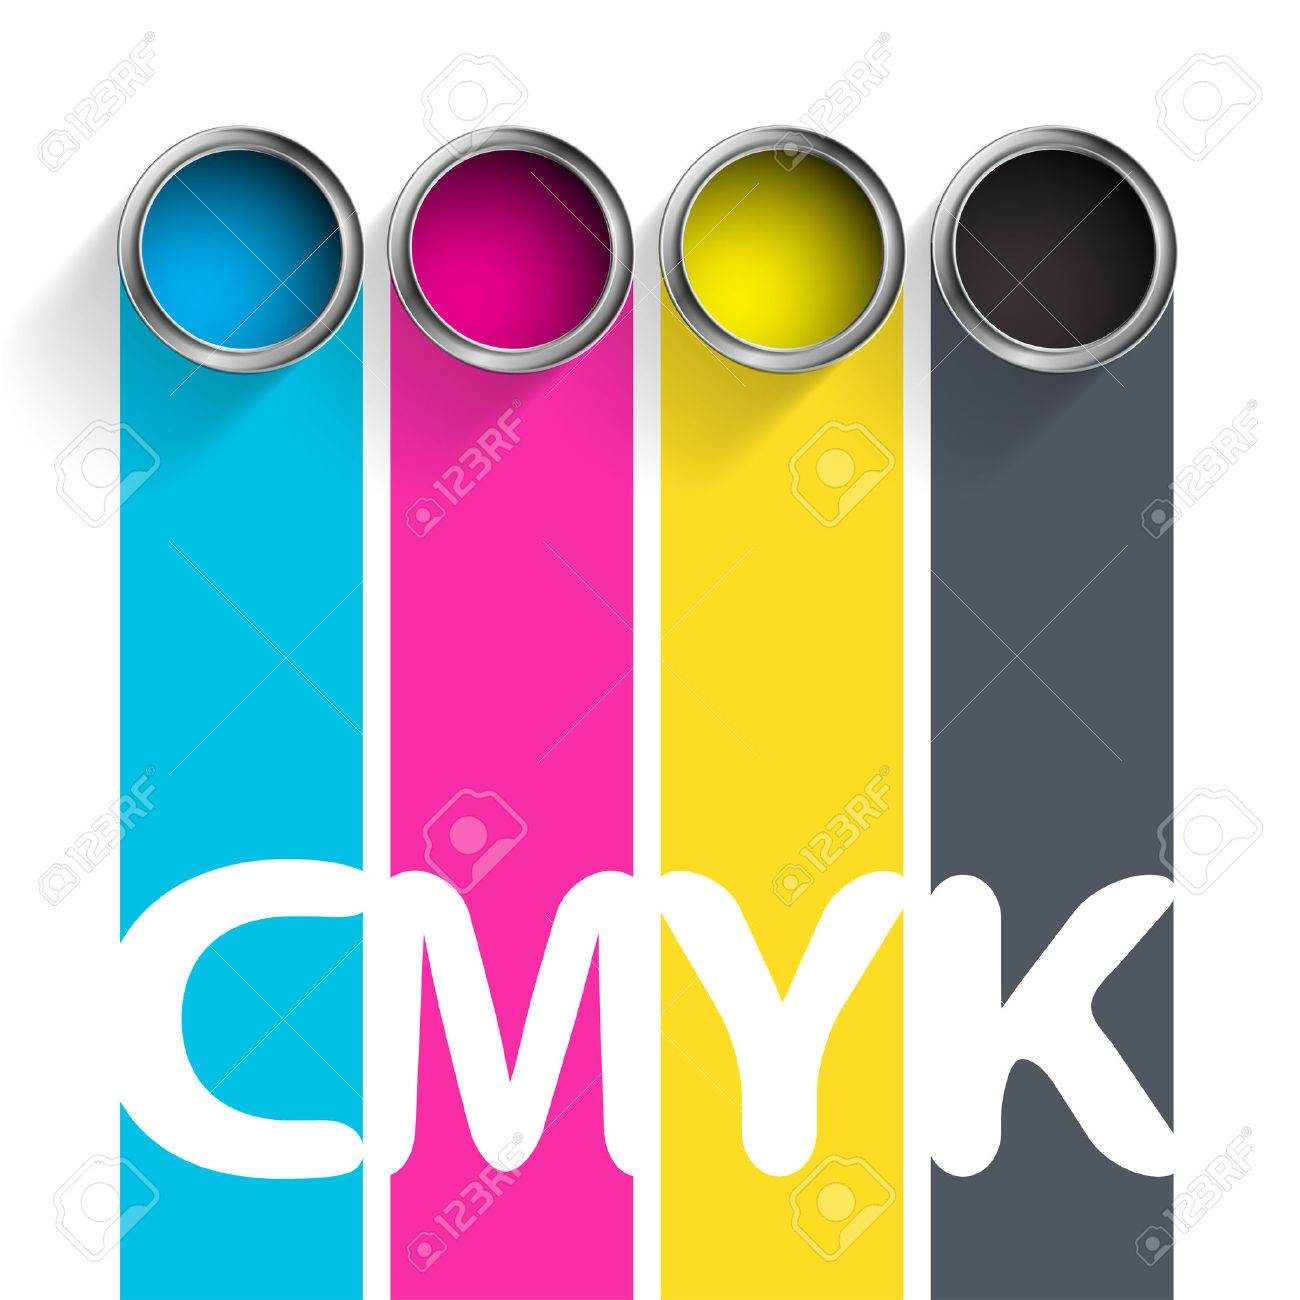 Bucket of paint CMYK. Color scheme for the printing industry. Stock vector illustration. - 54155867